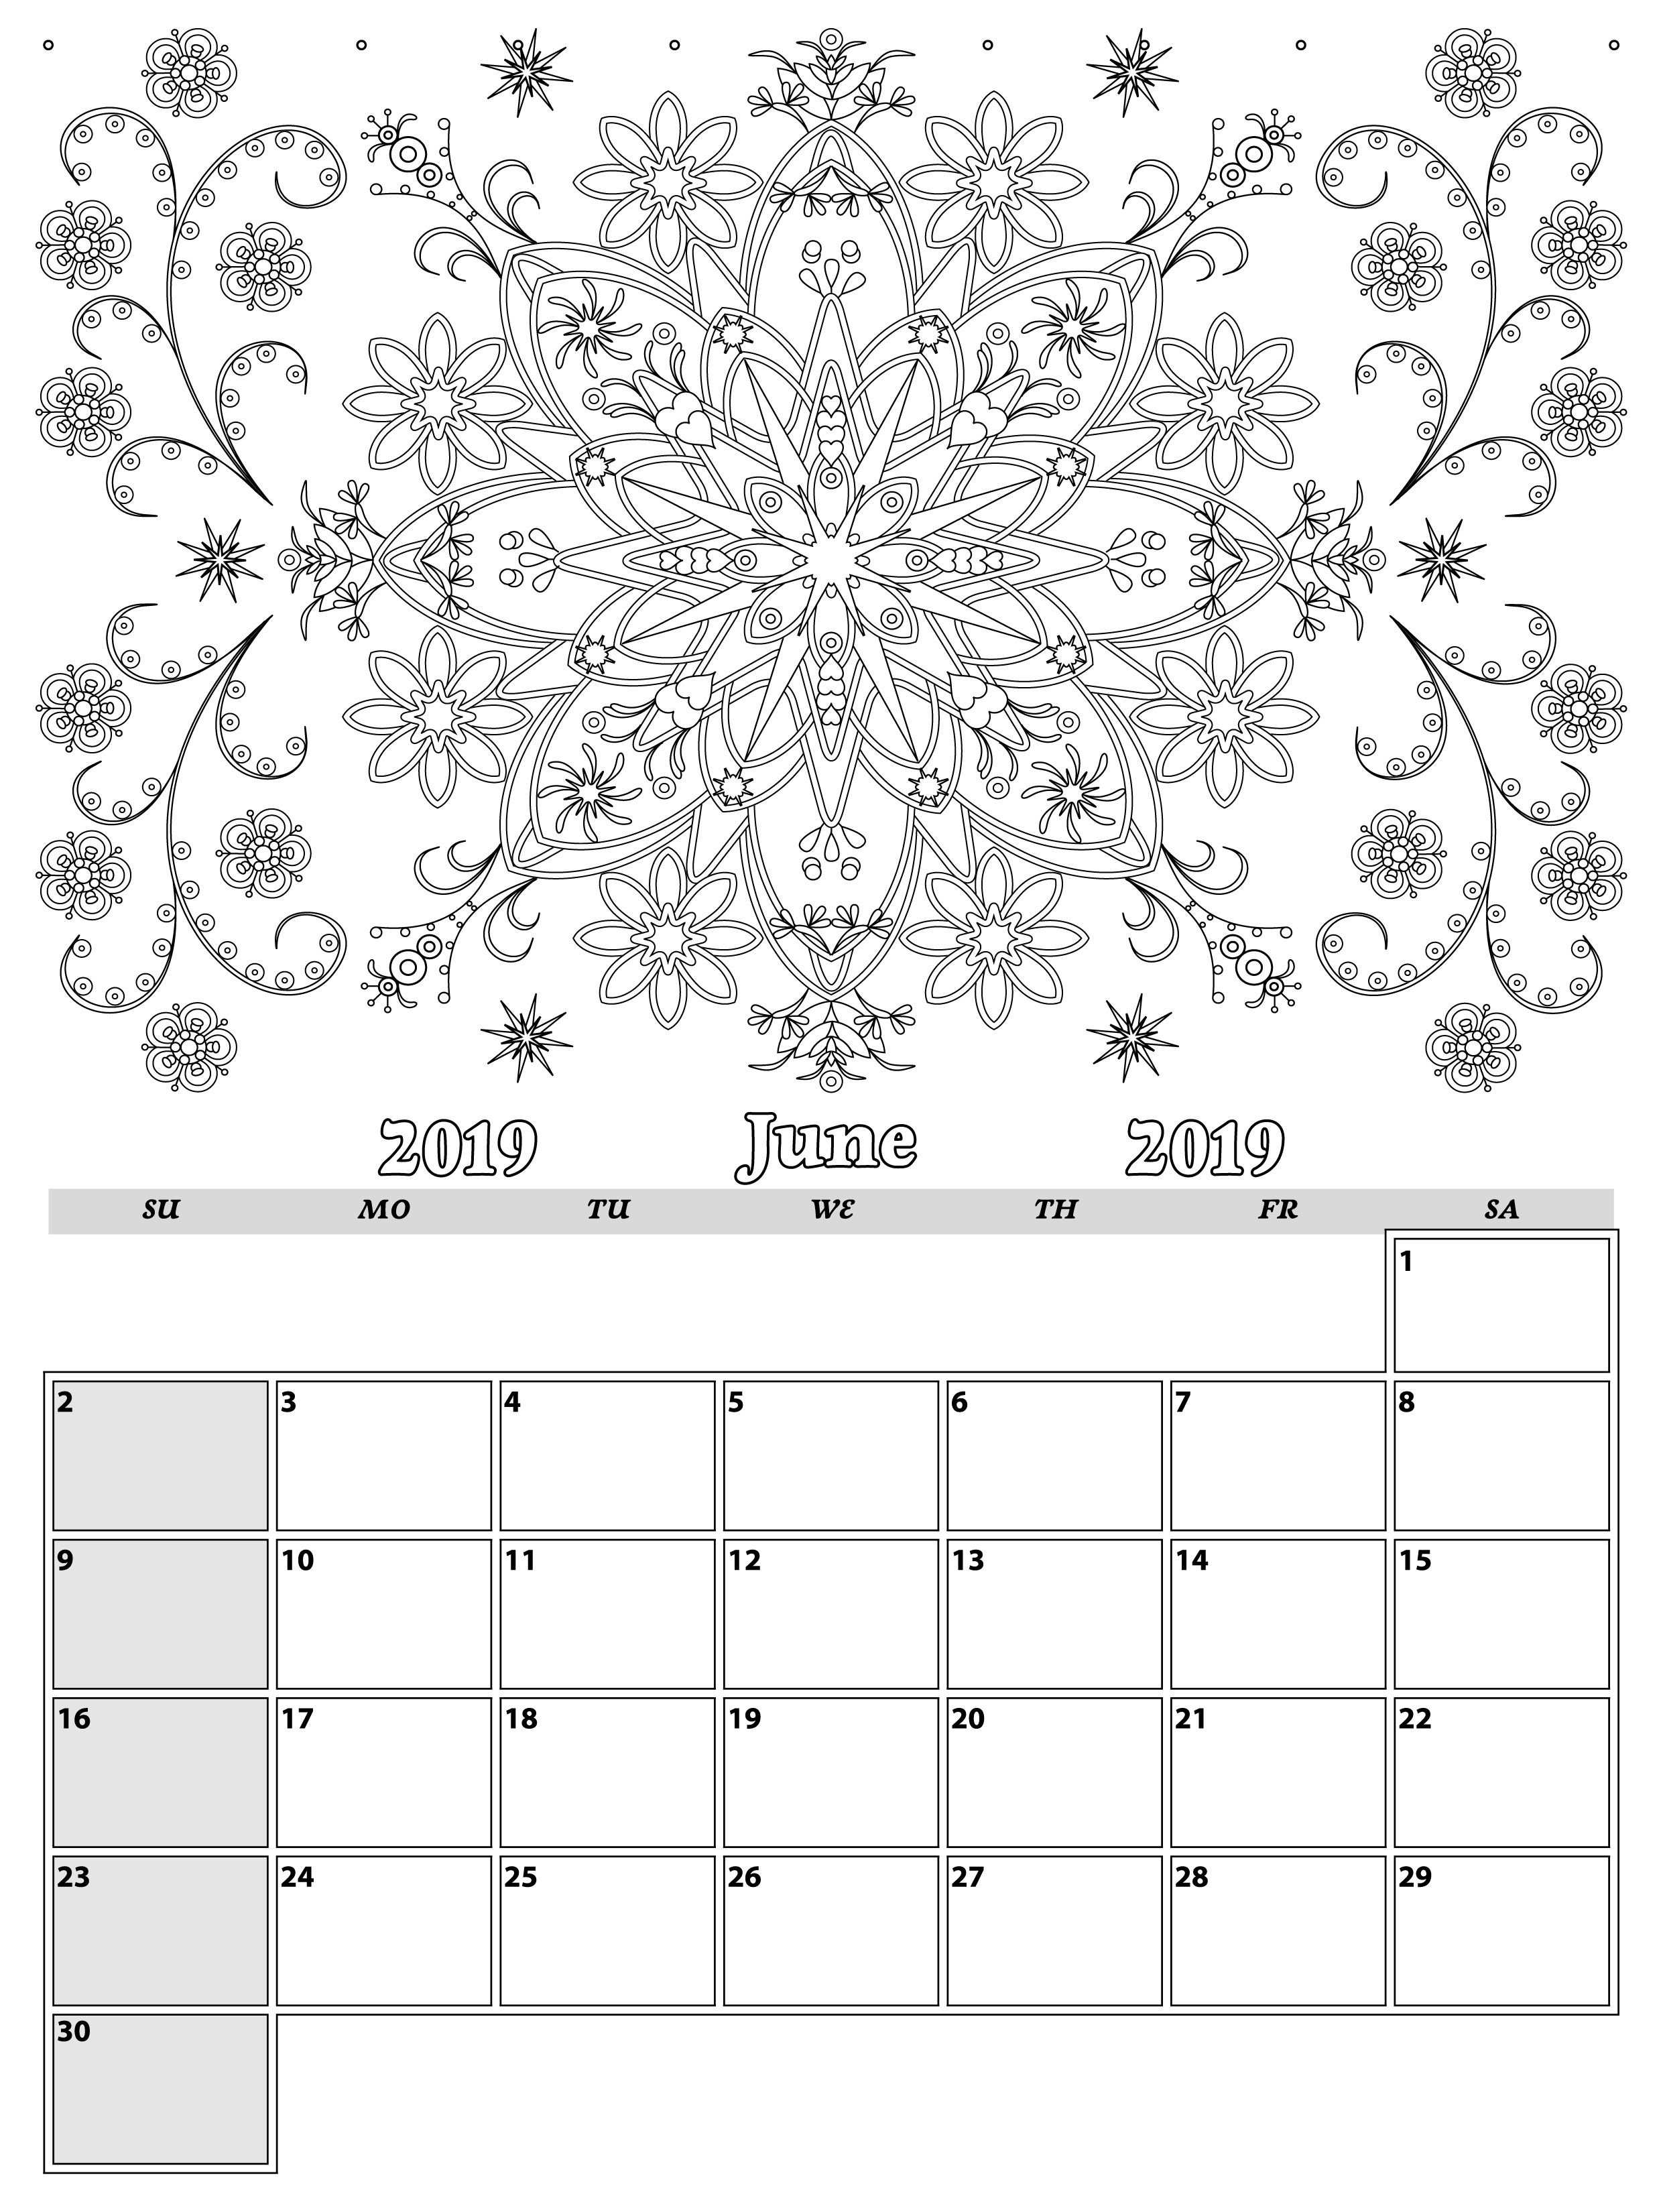 June. Monthly Planner 2019 In Doodle Style For Relax And Plan with regard to Doodle Monthly Planner Printer Templates